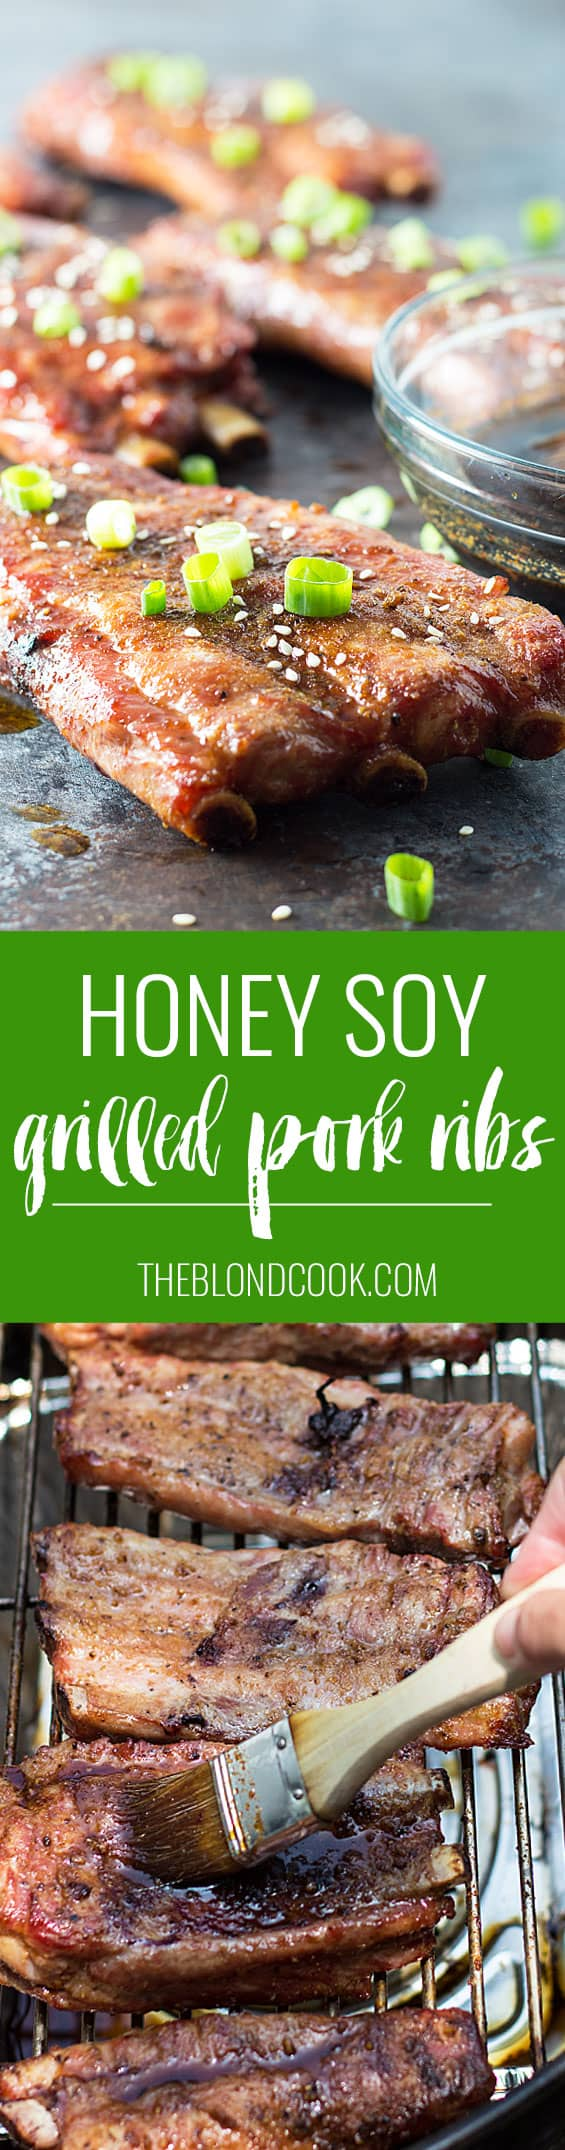 Honey Soy Grilled Pork Ribs | theblondcook.com